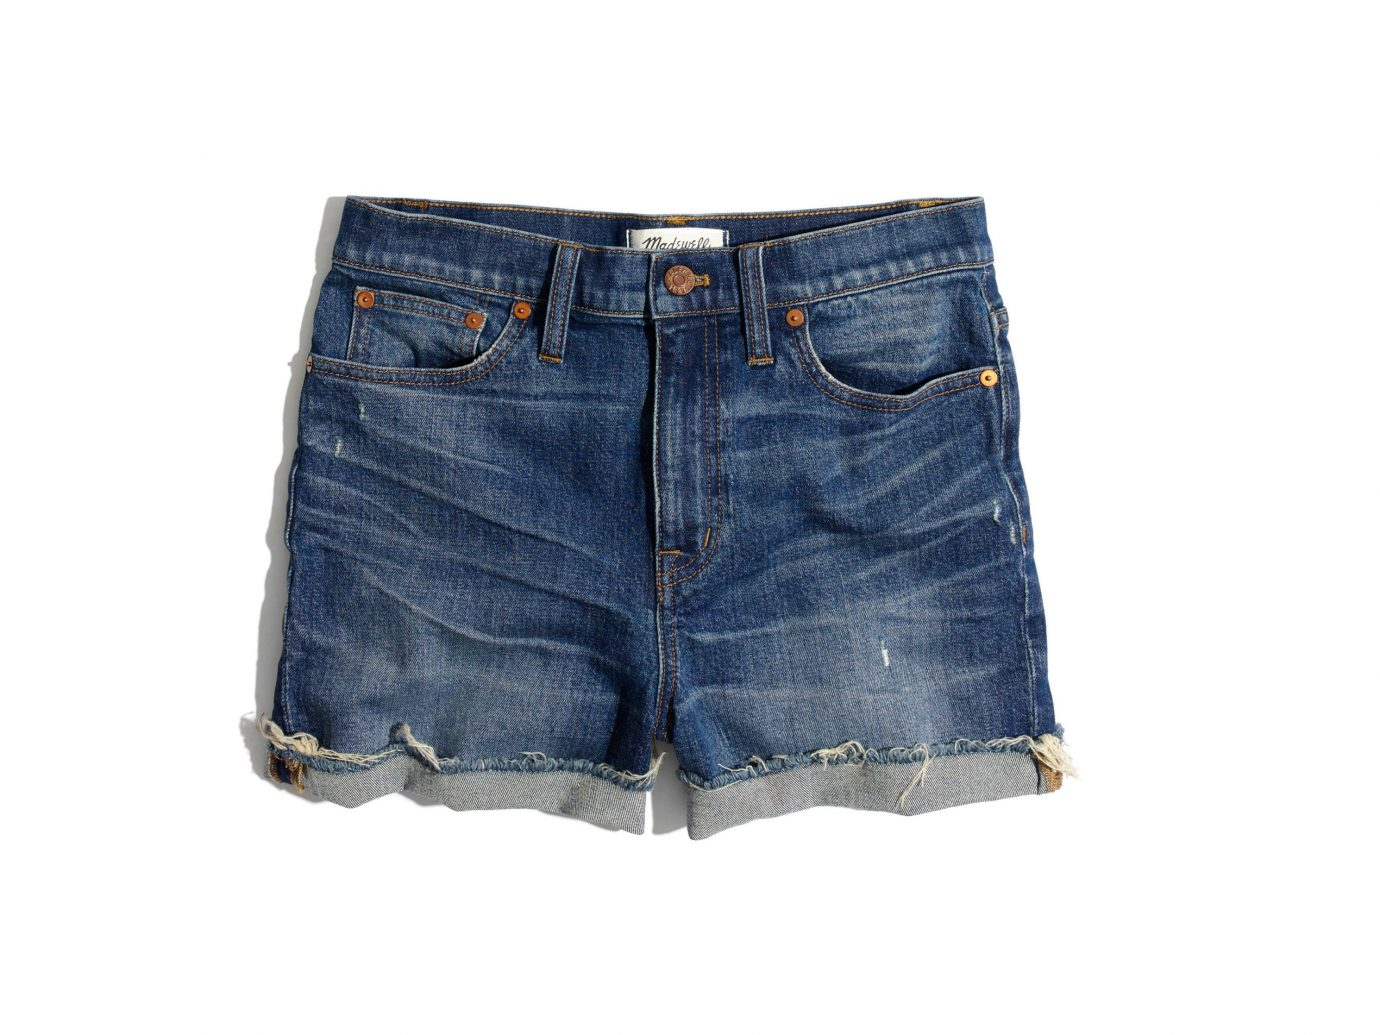 Madewell High-Rise Cuffed Denim Shorts